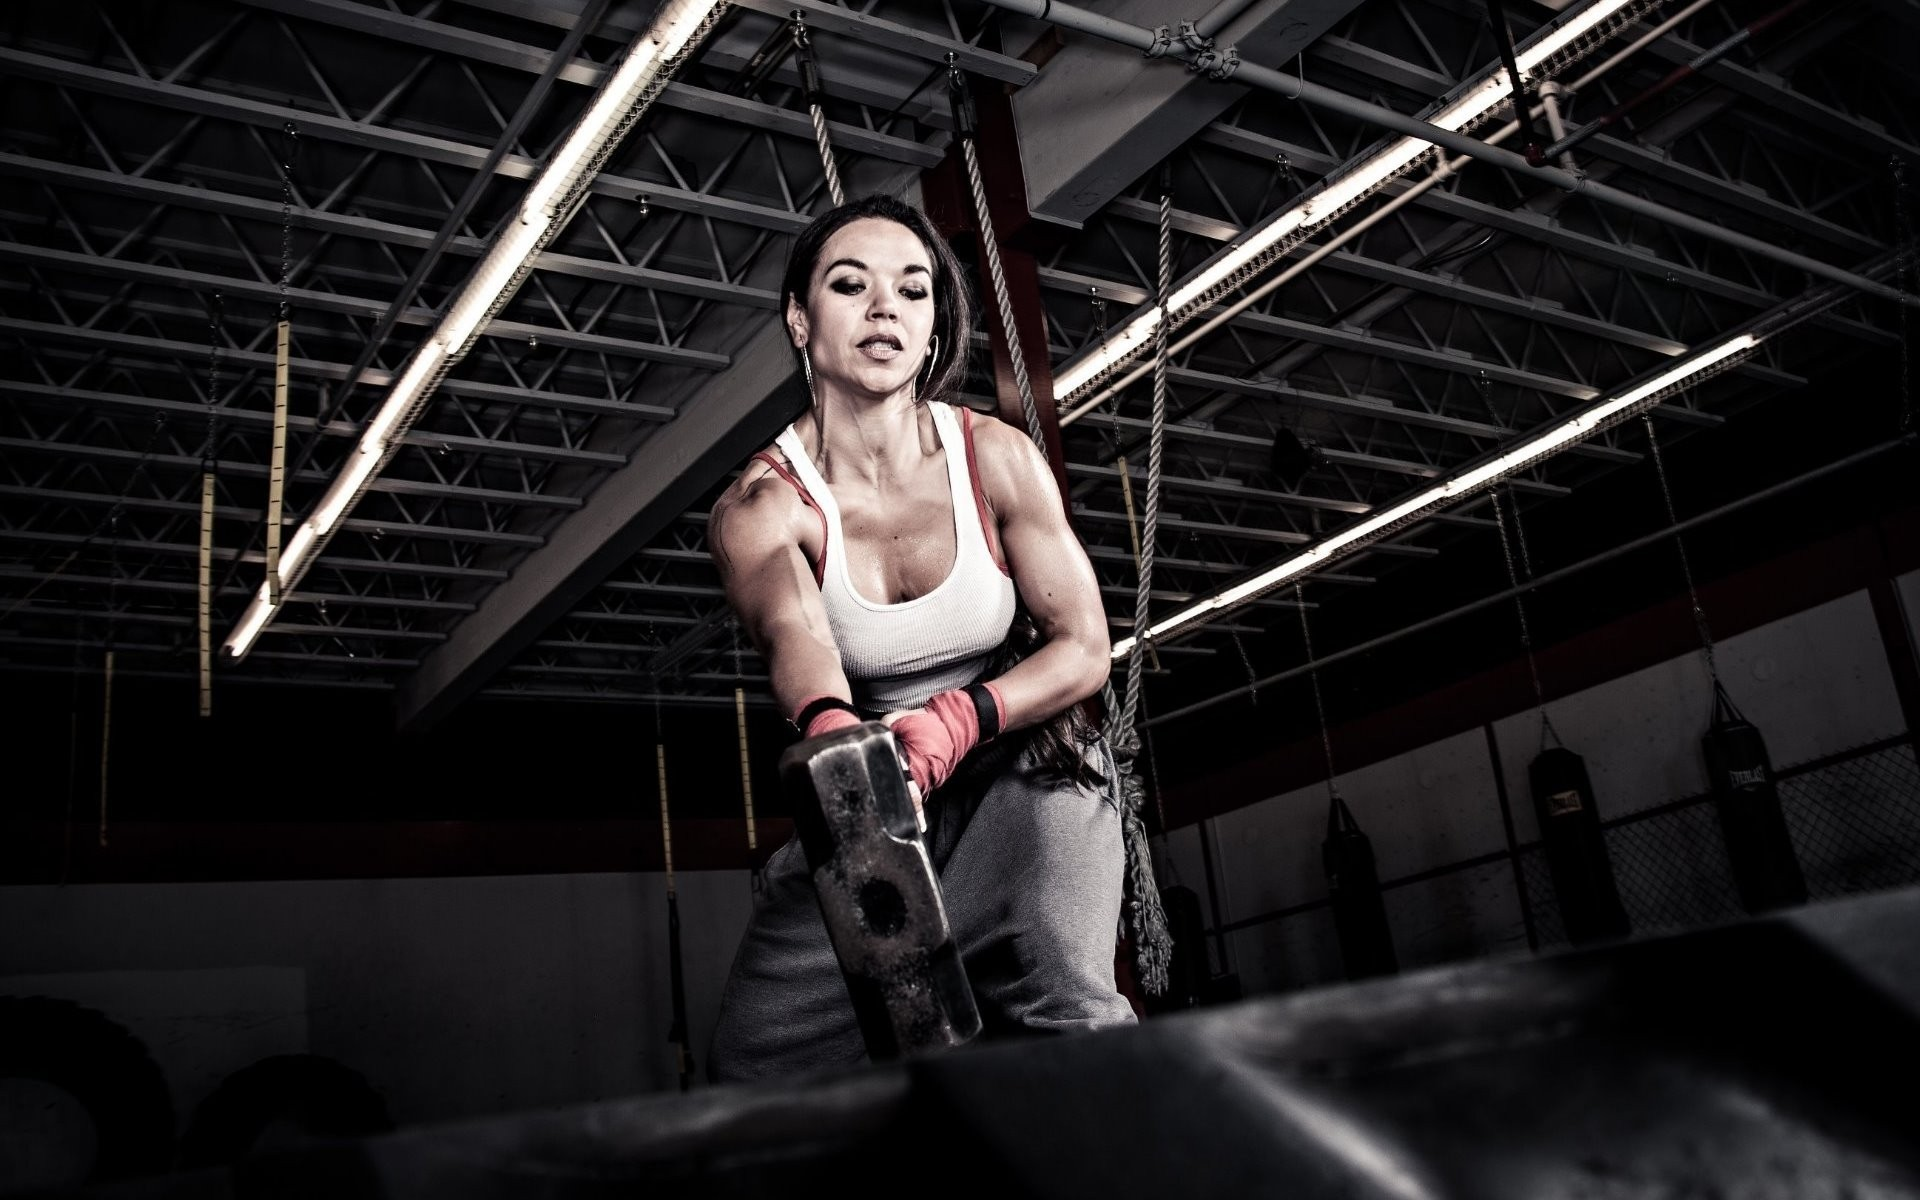 Crossfit Wallpapers 67 images 1920x1200